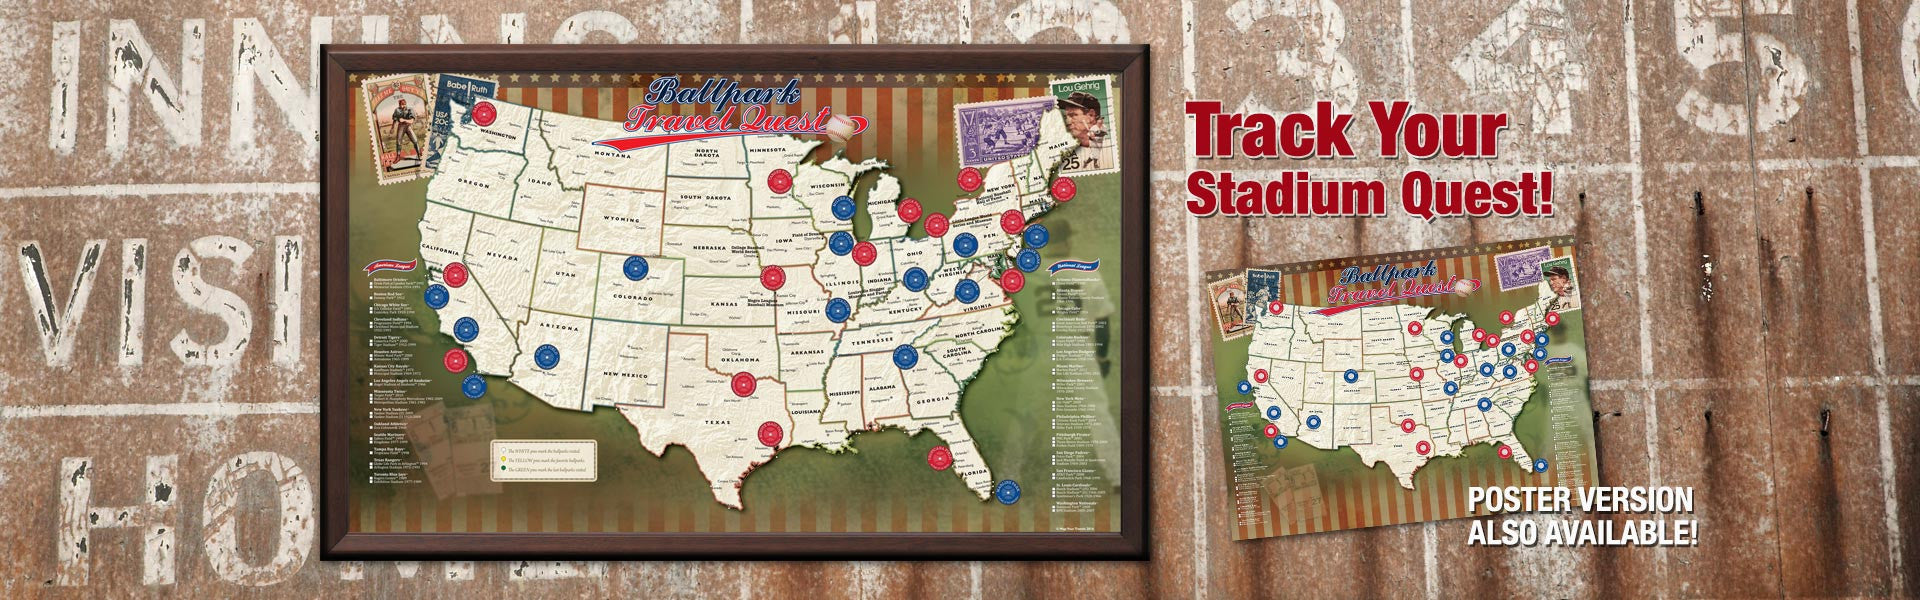 Track Your Stadium Quest with the Map Your Travels Ballpark Travel Quest Map